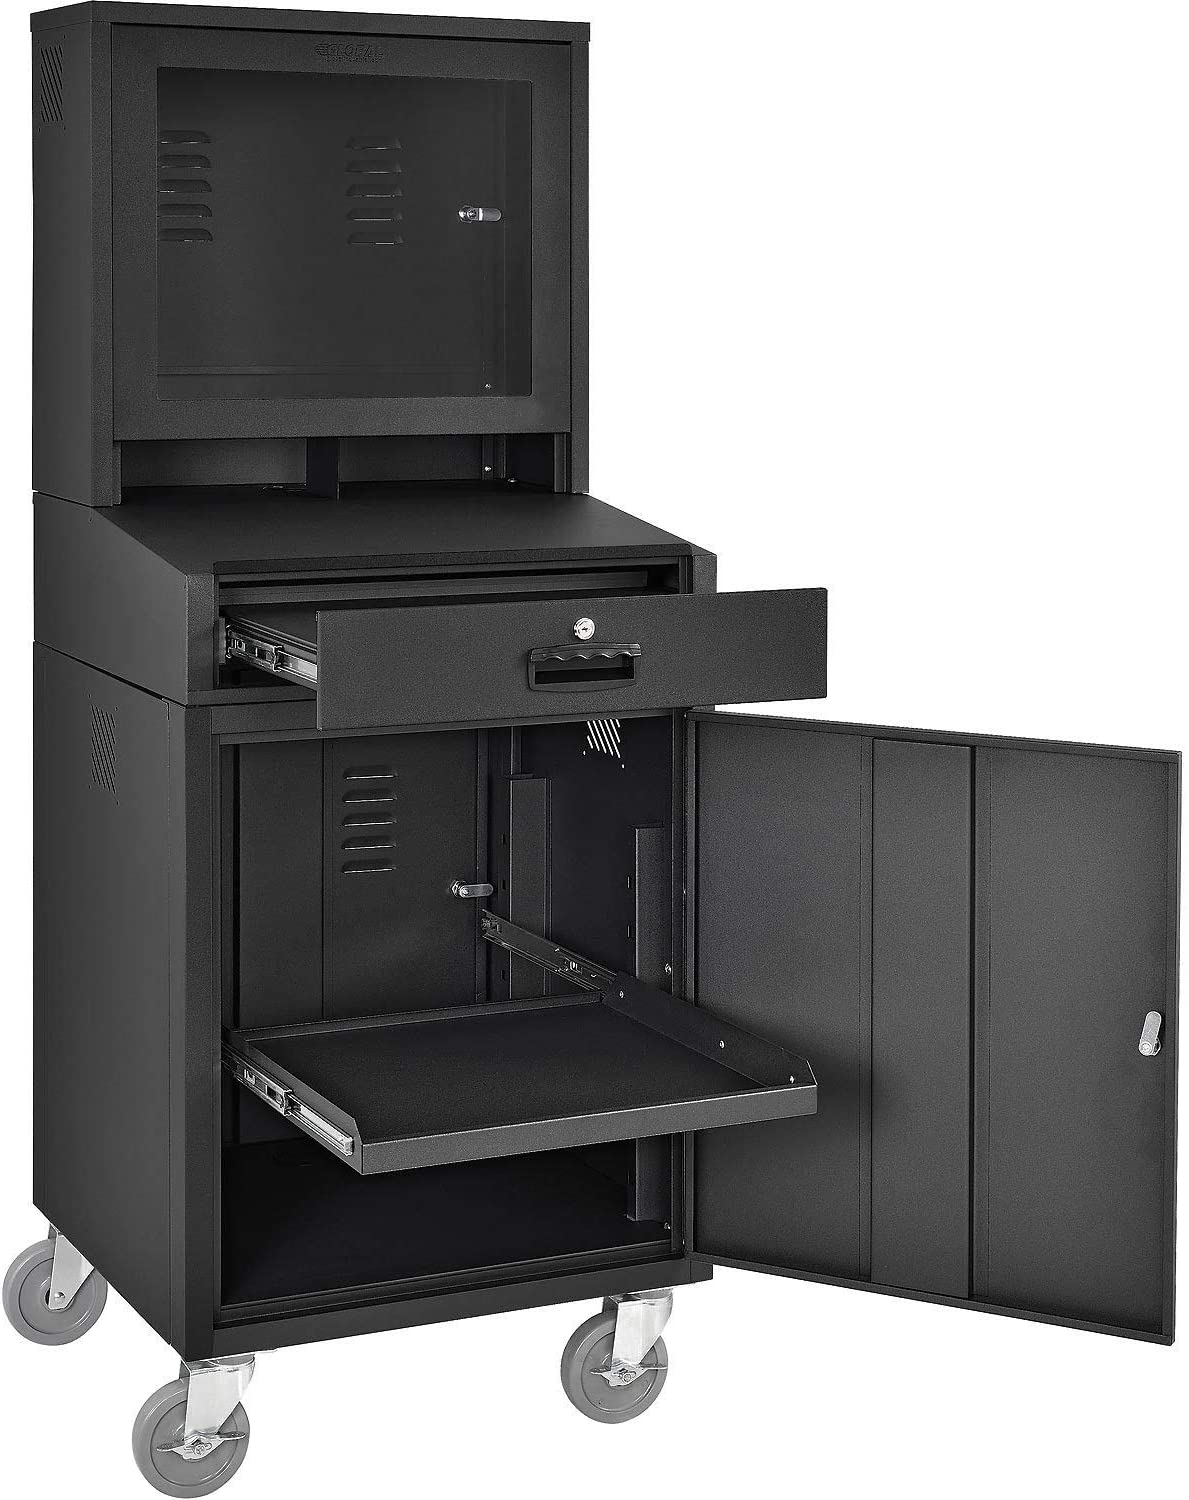 """Mobile Security LCD Computer Cabinet Enclosure, Black, 24-1/2""""W x 22-1/2""""D x 62-3/4""""H"""